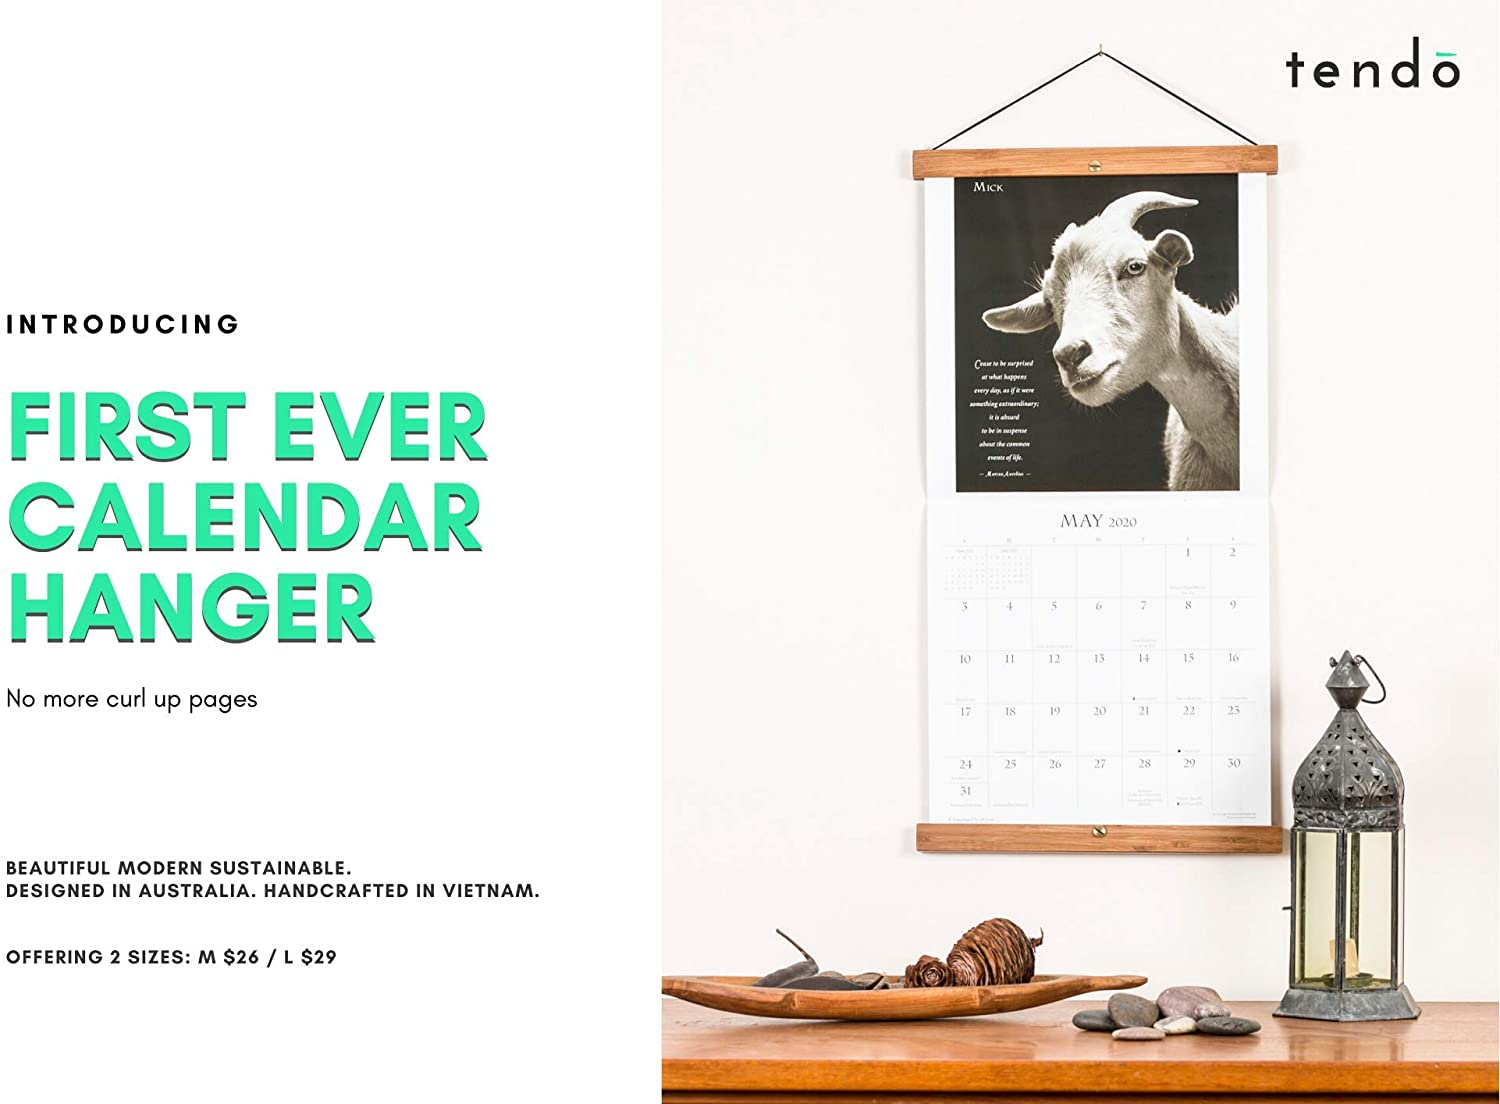 Tendō Natural Bamboo 2020 Wall Calendar Display Hanger Frame | No More Curled Up Pages | Natural Chocolate Finish | Large